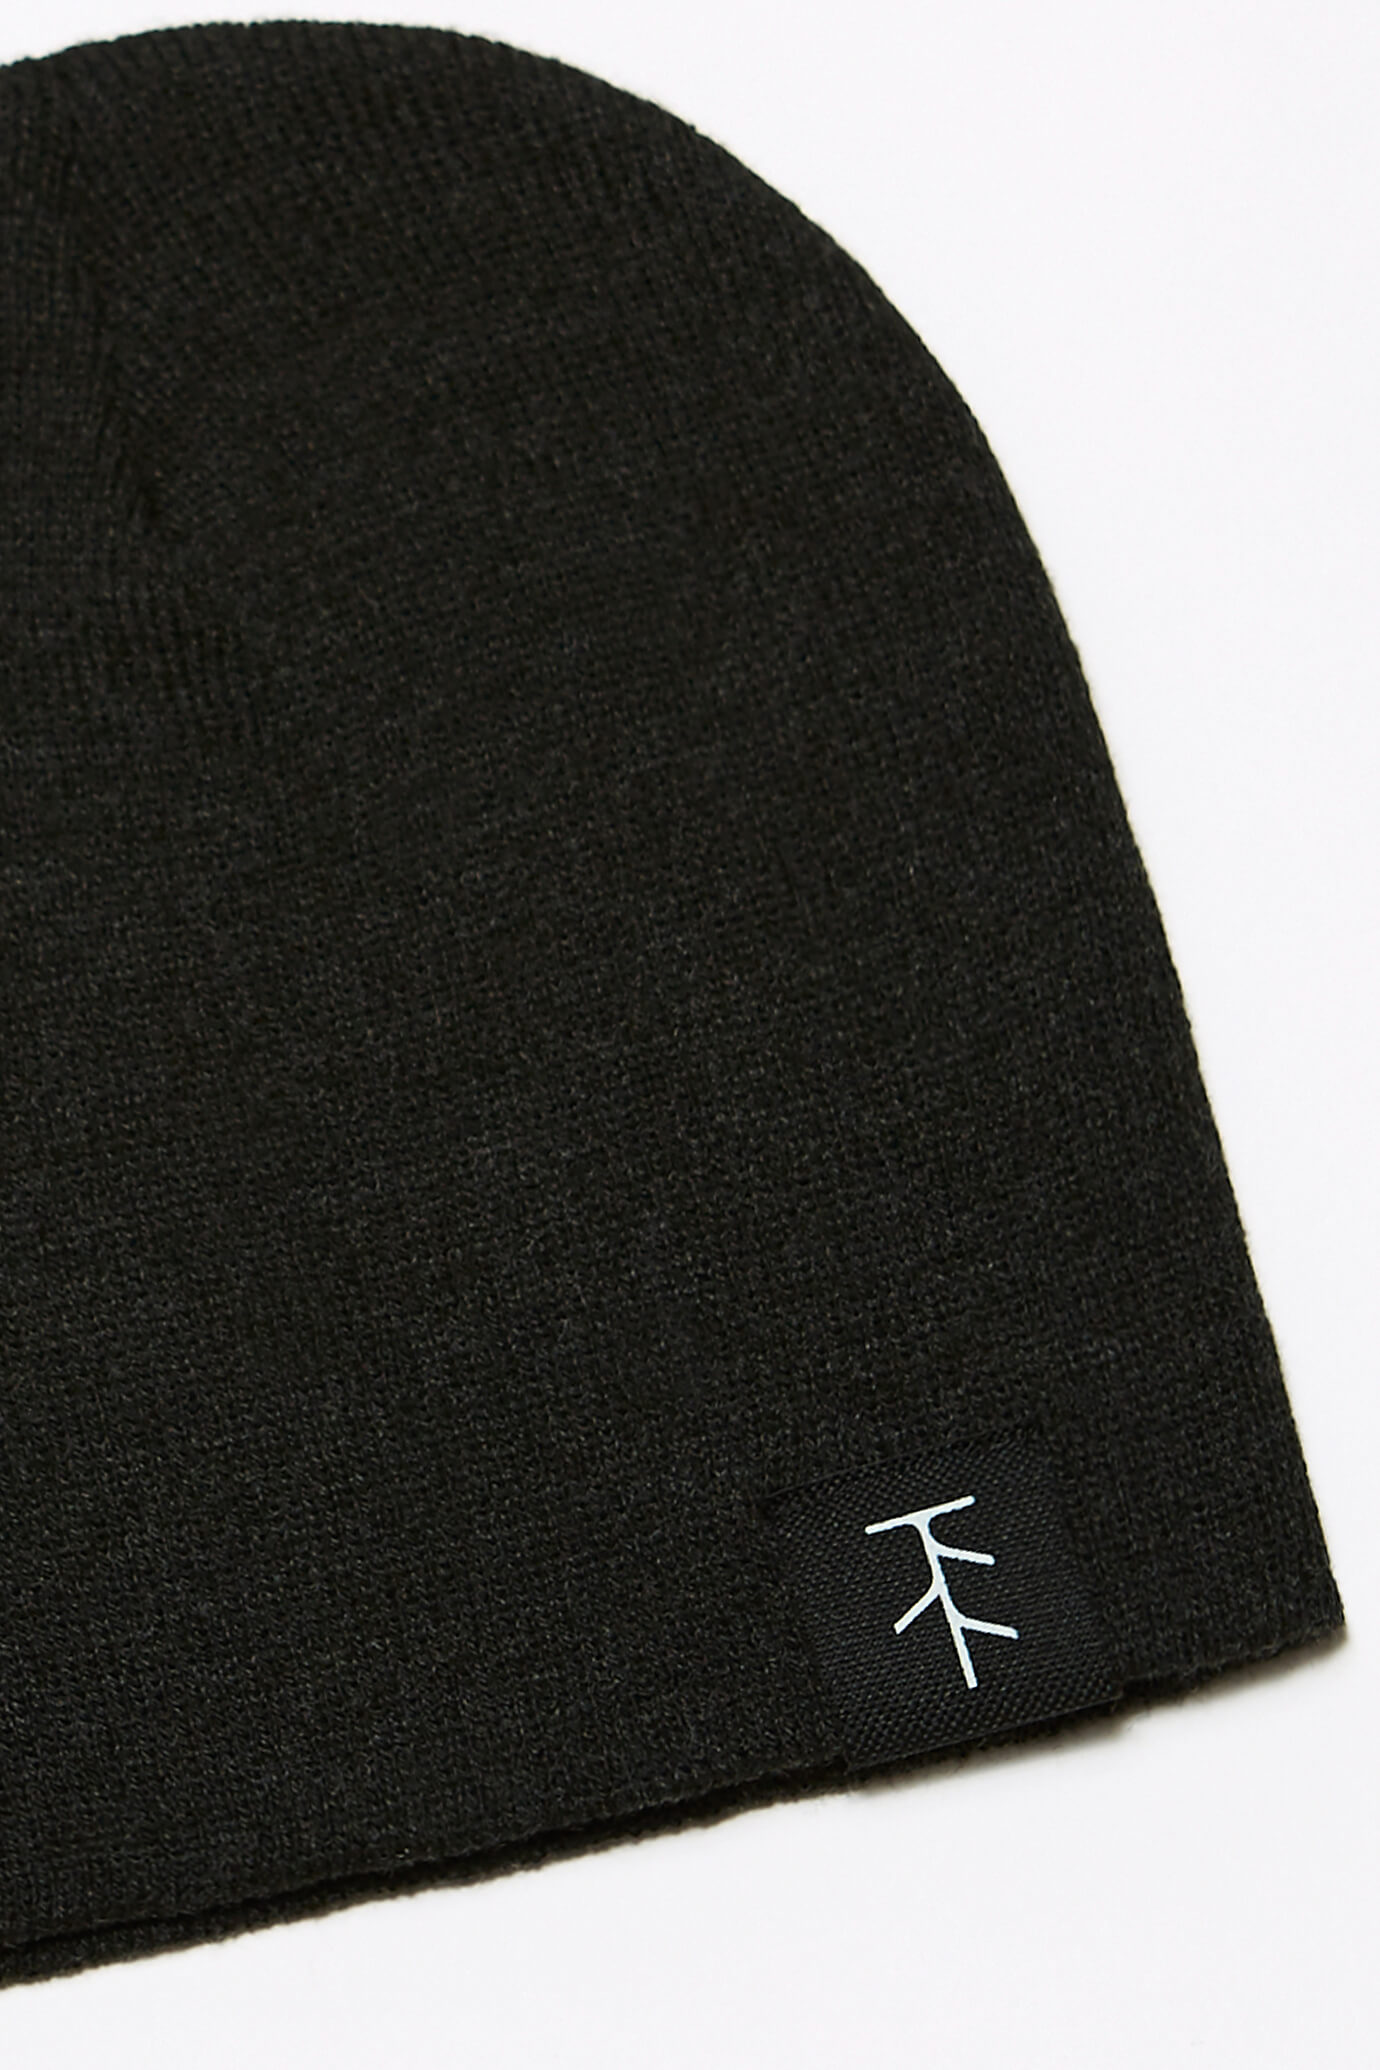 taproot pictures skull cap and winter hat